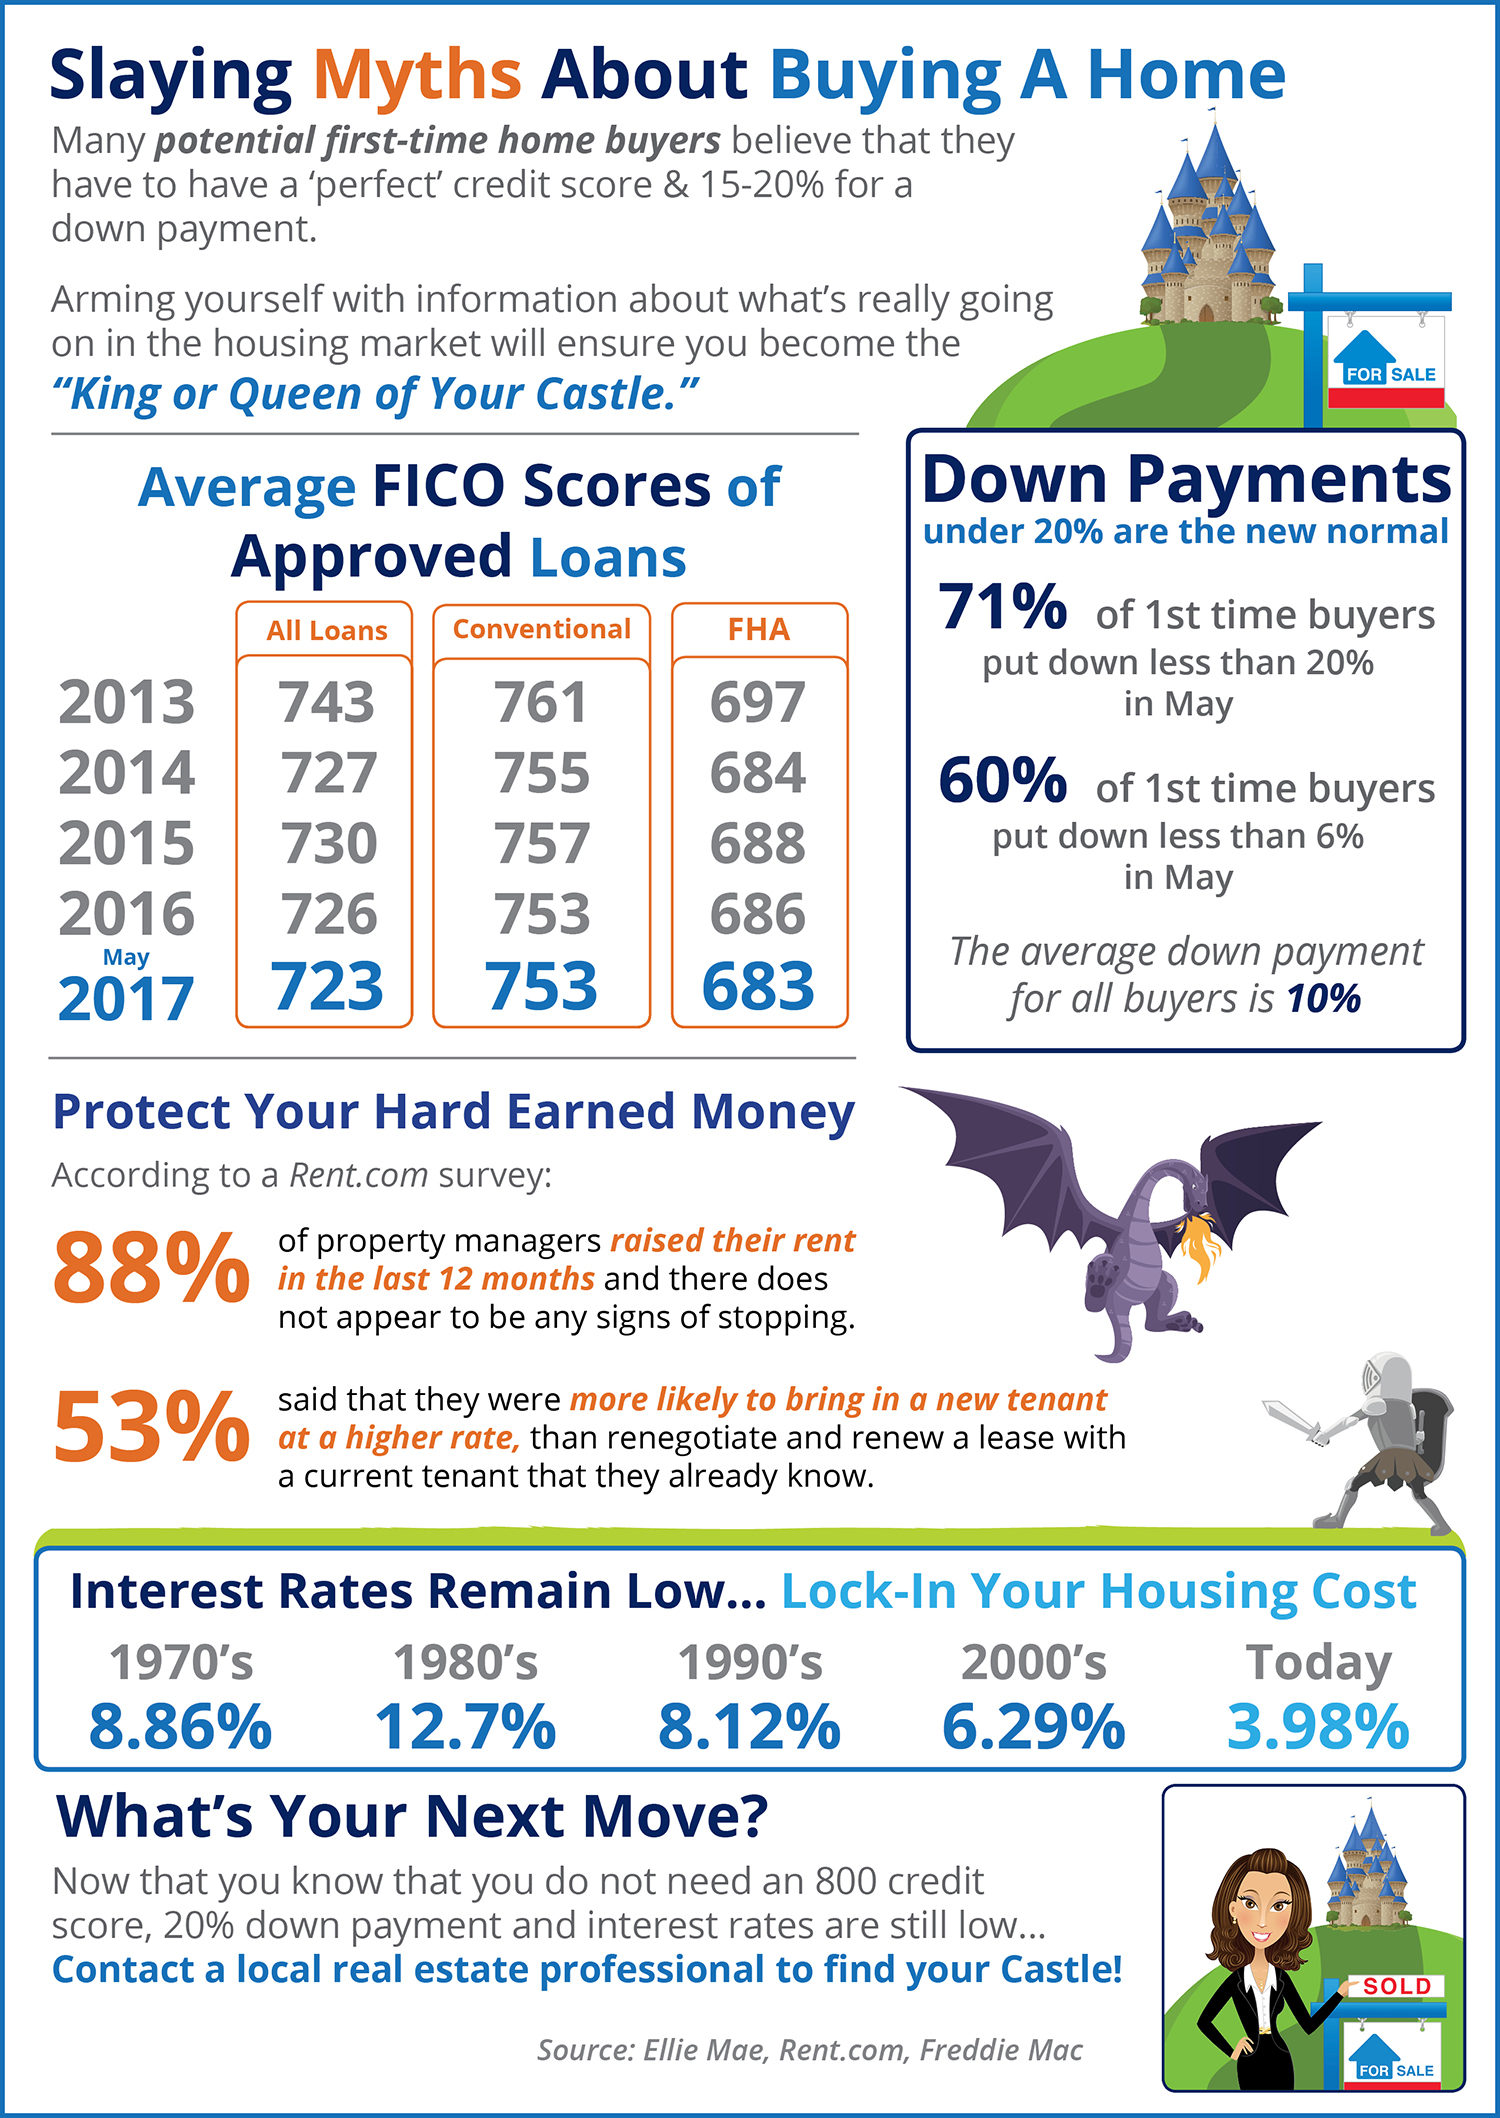 Bridge builders home buying myths slayed infographic Questions when buying a house